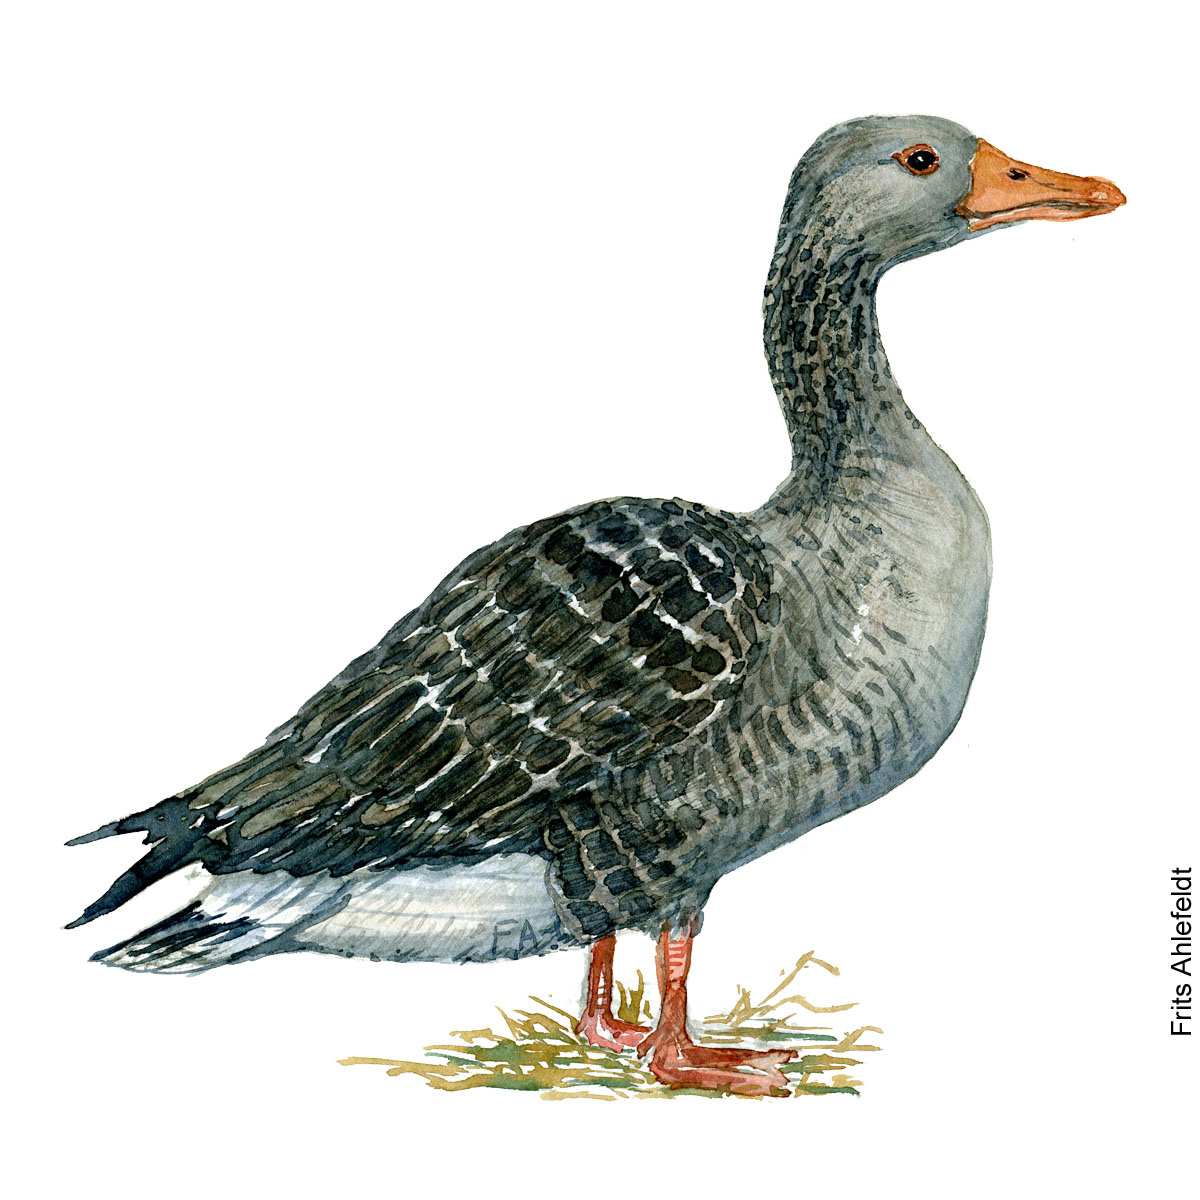 Greylag goose. Bird watercolor illustration handmade by Frits Ahlefeldt